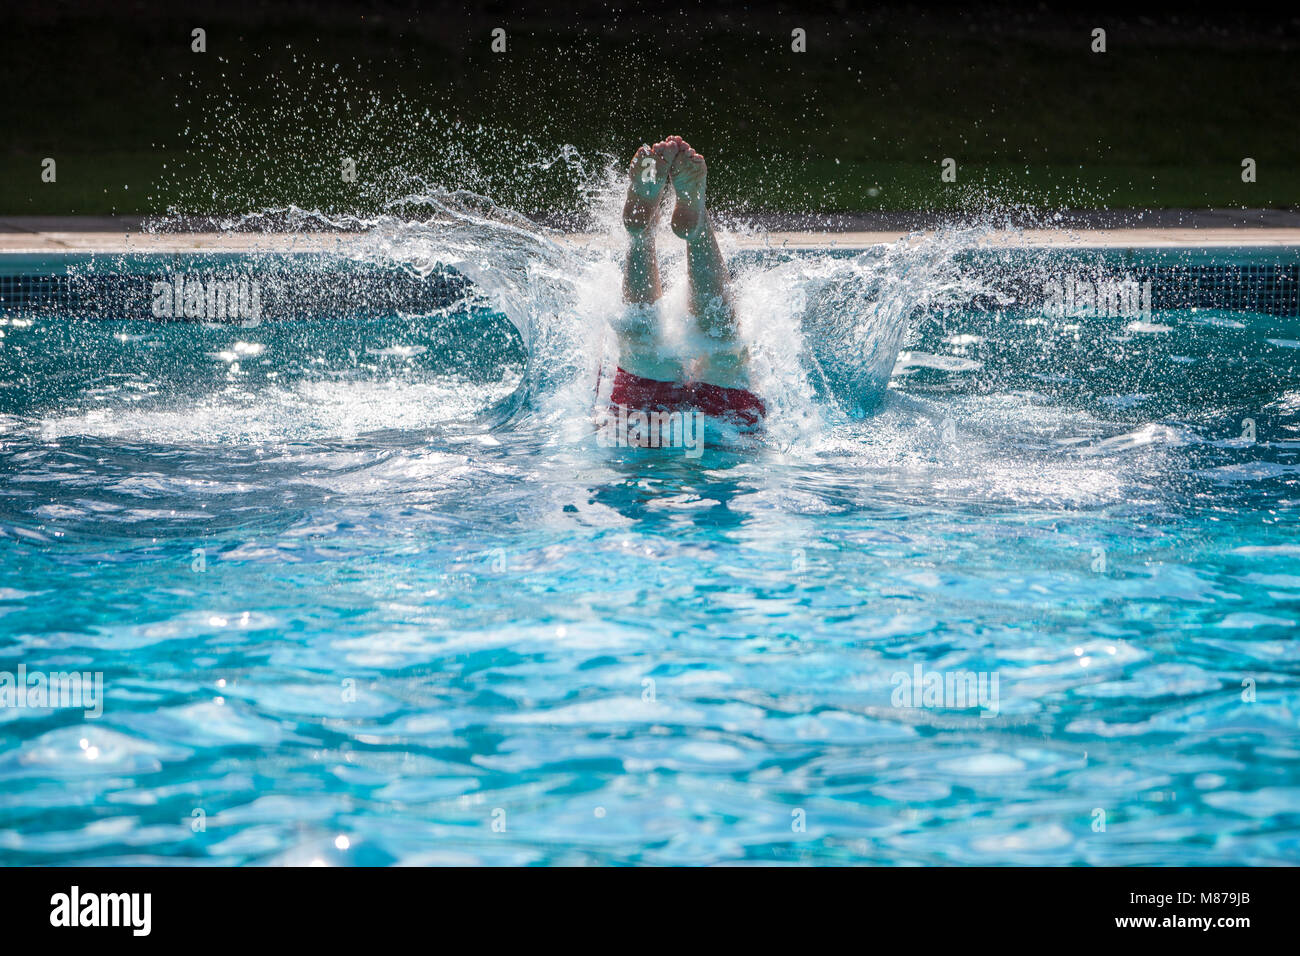 diving feet, diving into the deep pool - Stock Image